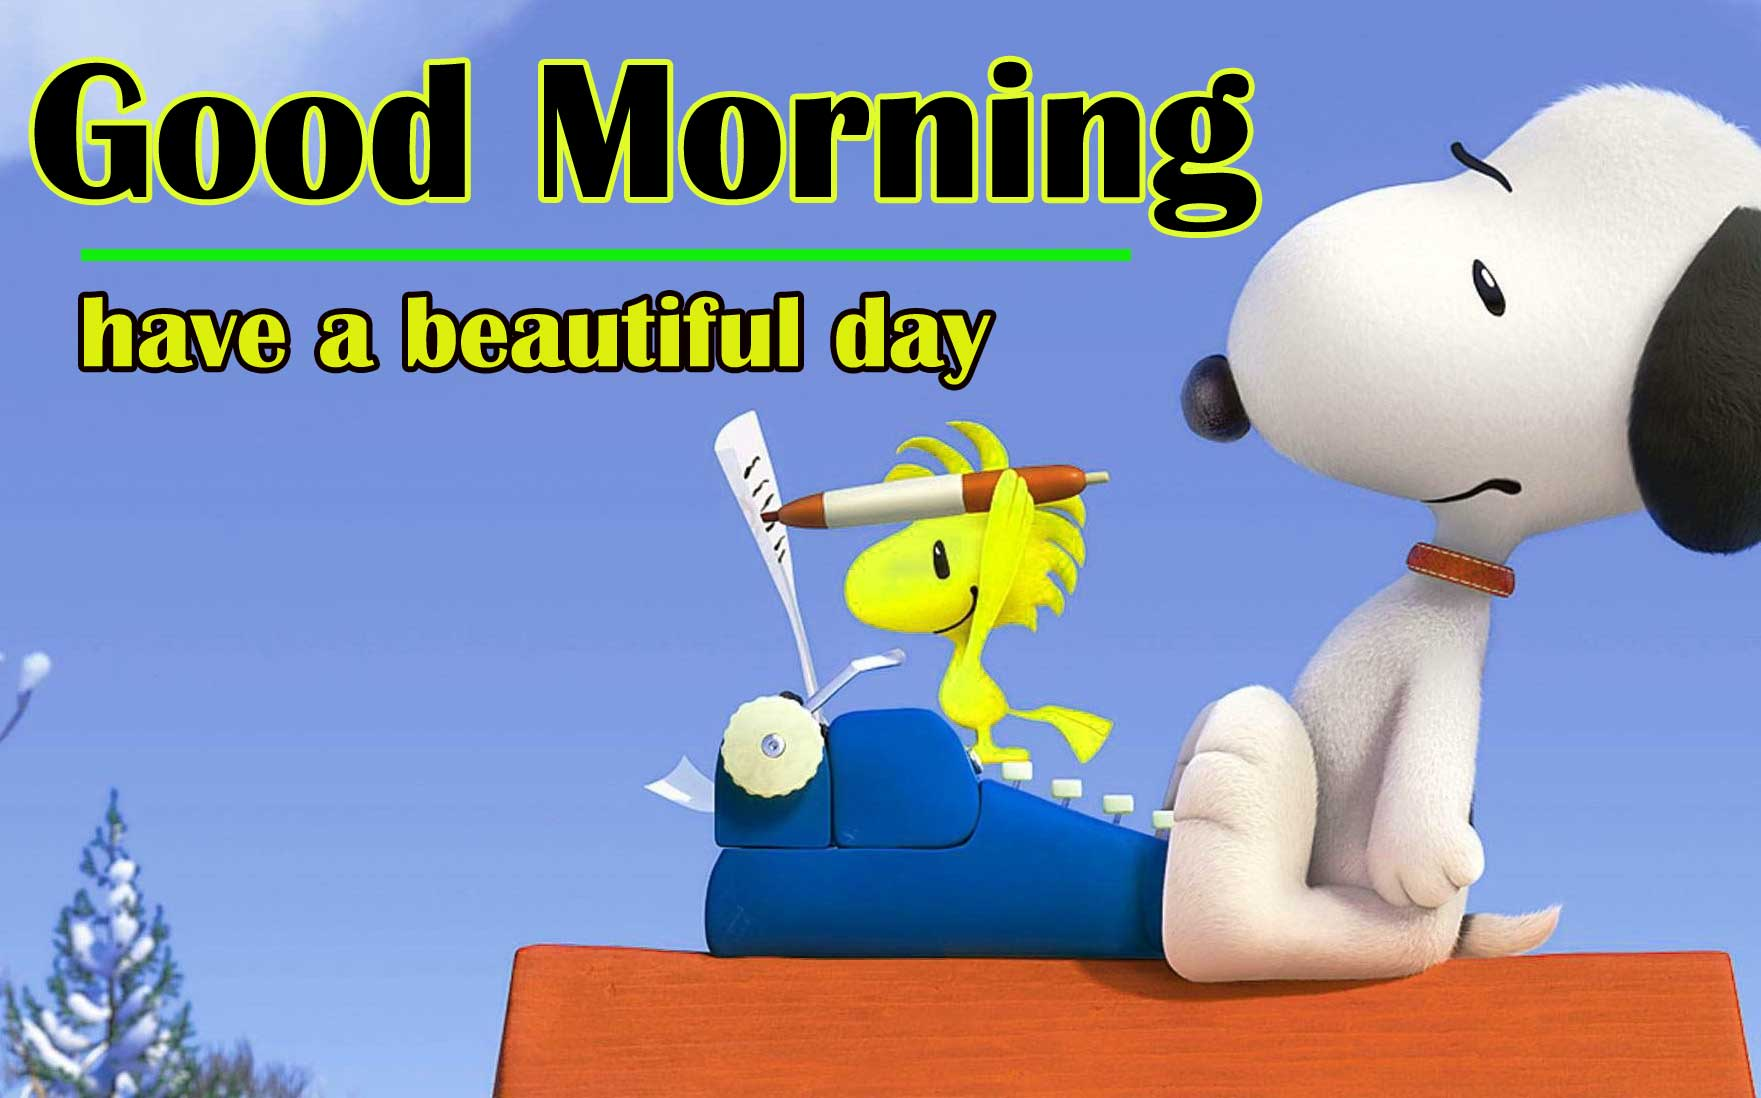 Snoopy good Morning 5